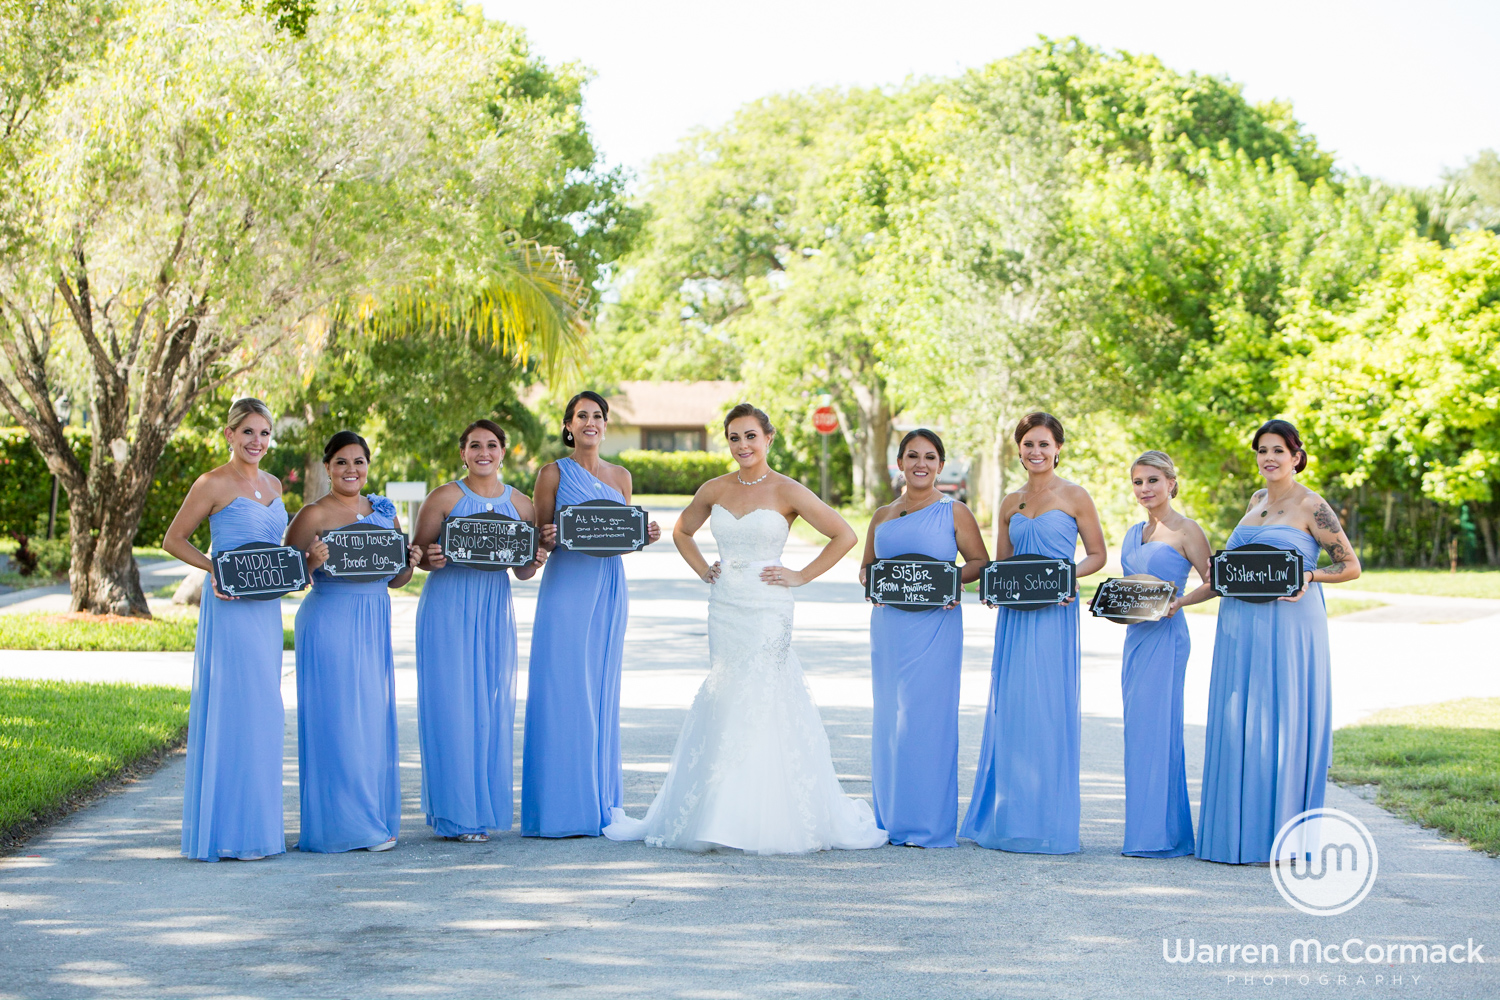 Logan's Place Miami Wedding - Warren McCormack Photographer20.jpg